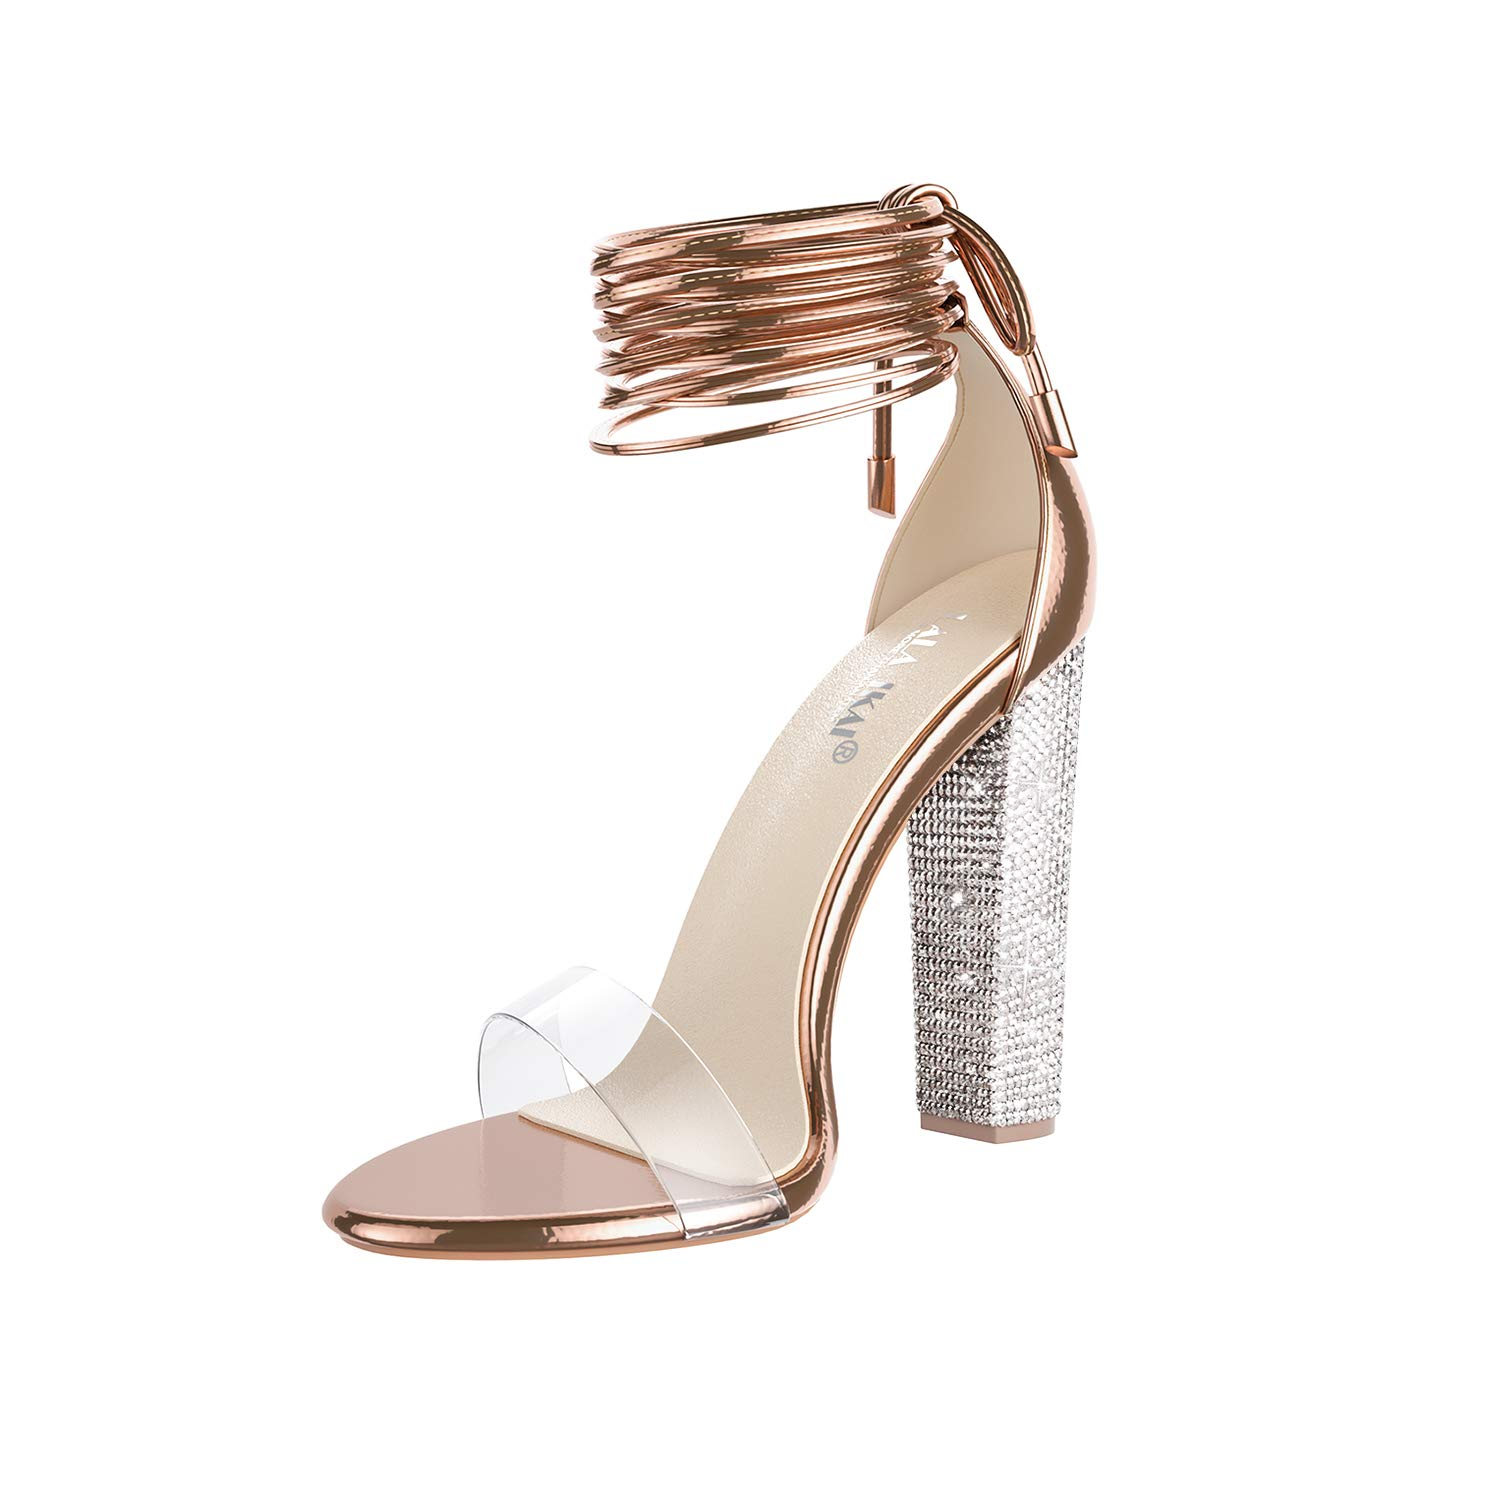 LALA IKAI Women's Gold High Heels Sandals with Rhinestone Ankle Strappy Clear Chunky Heels Dress Party Pumps Shoes Rose Gold 8.5 by LALA IKAI